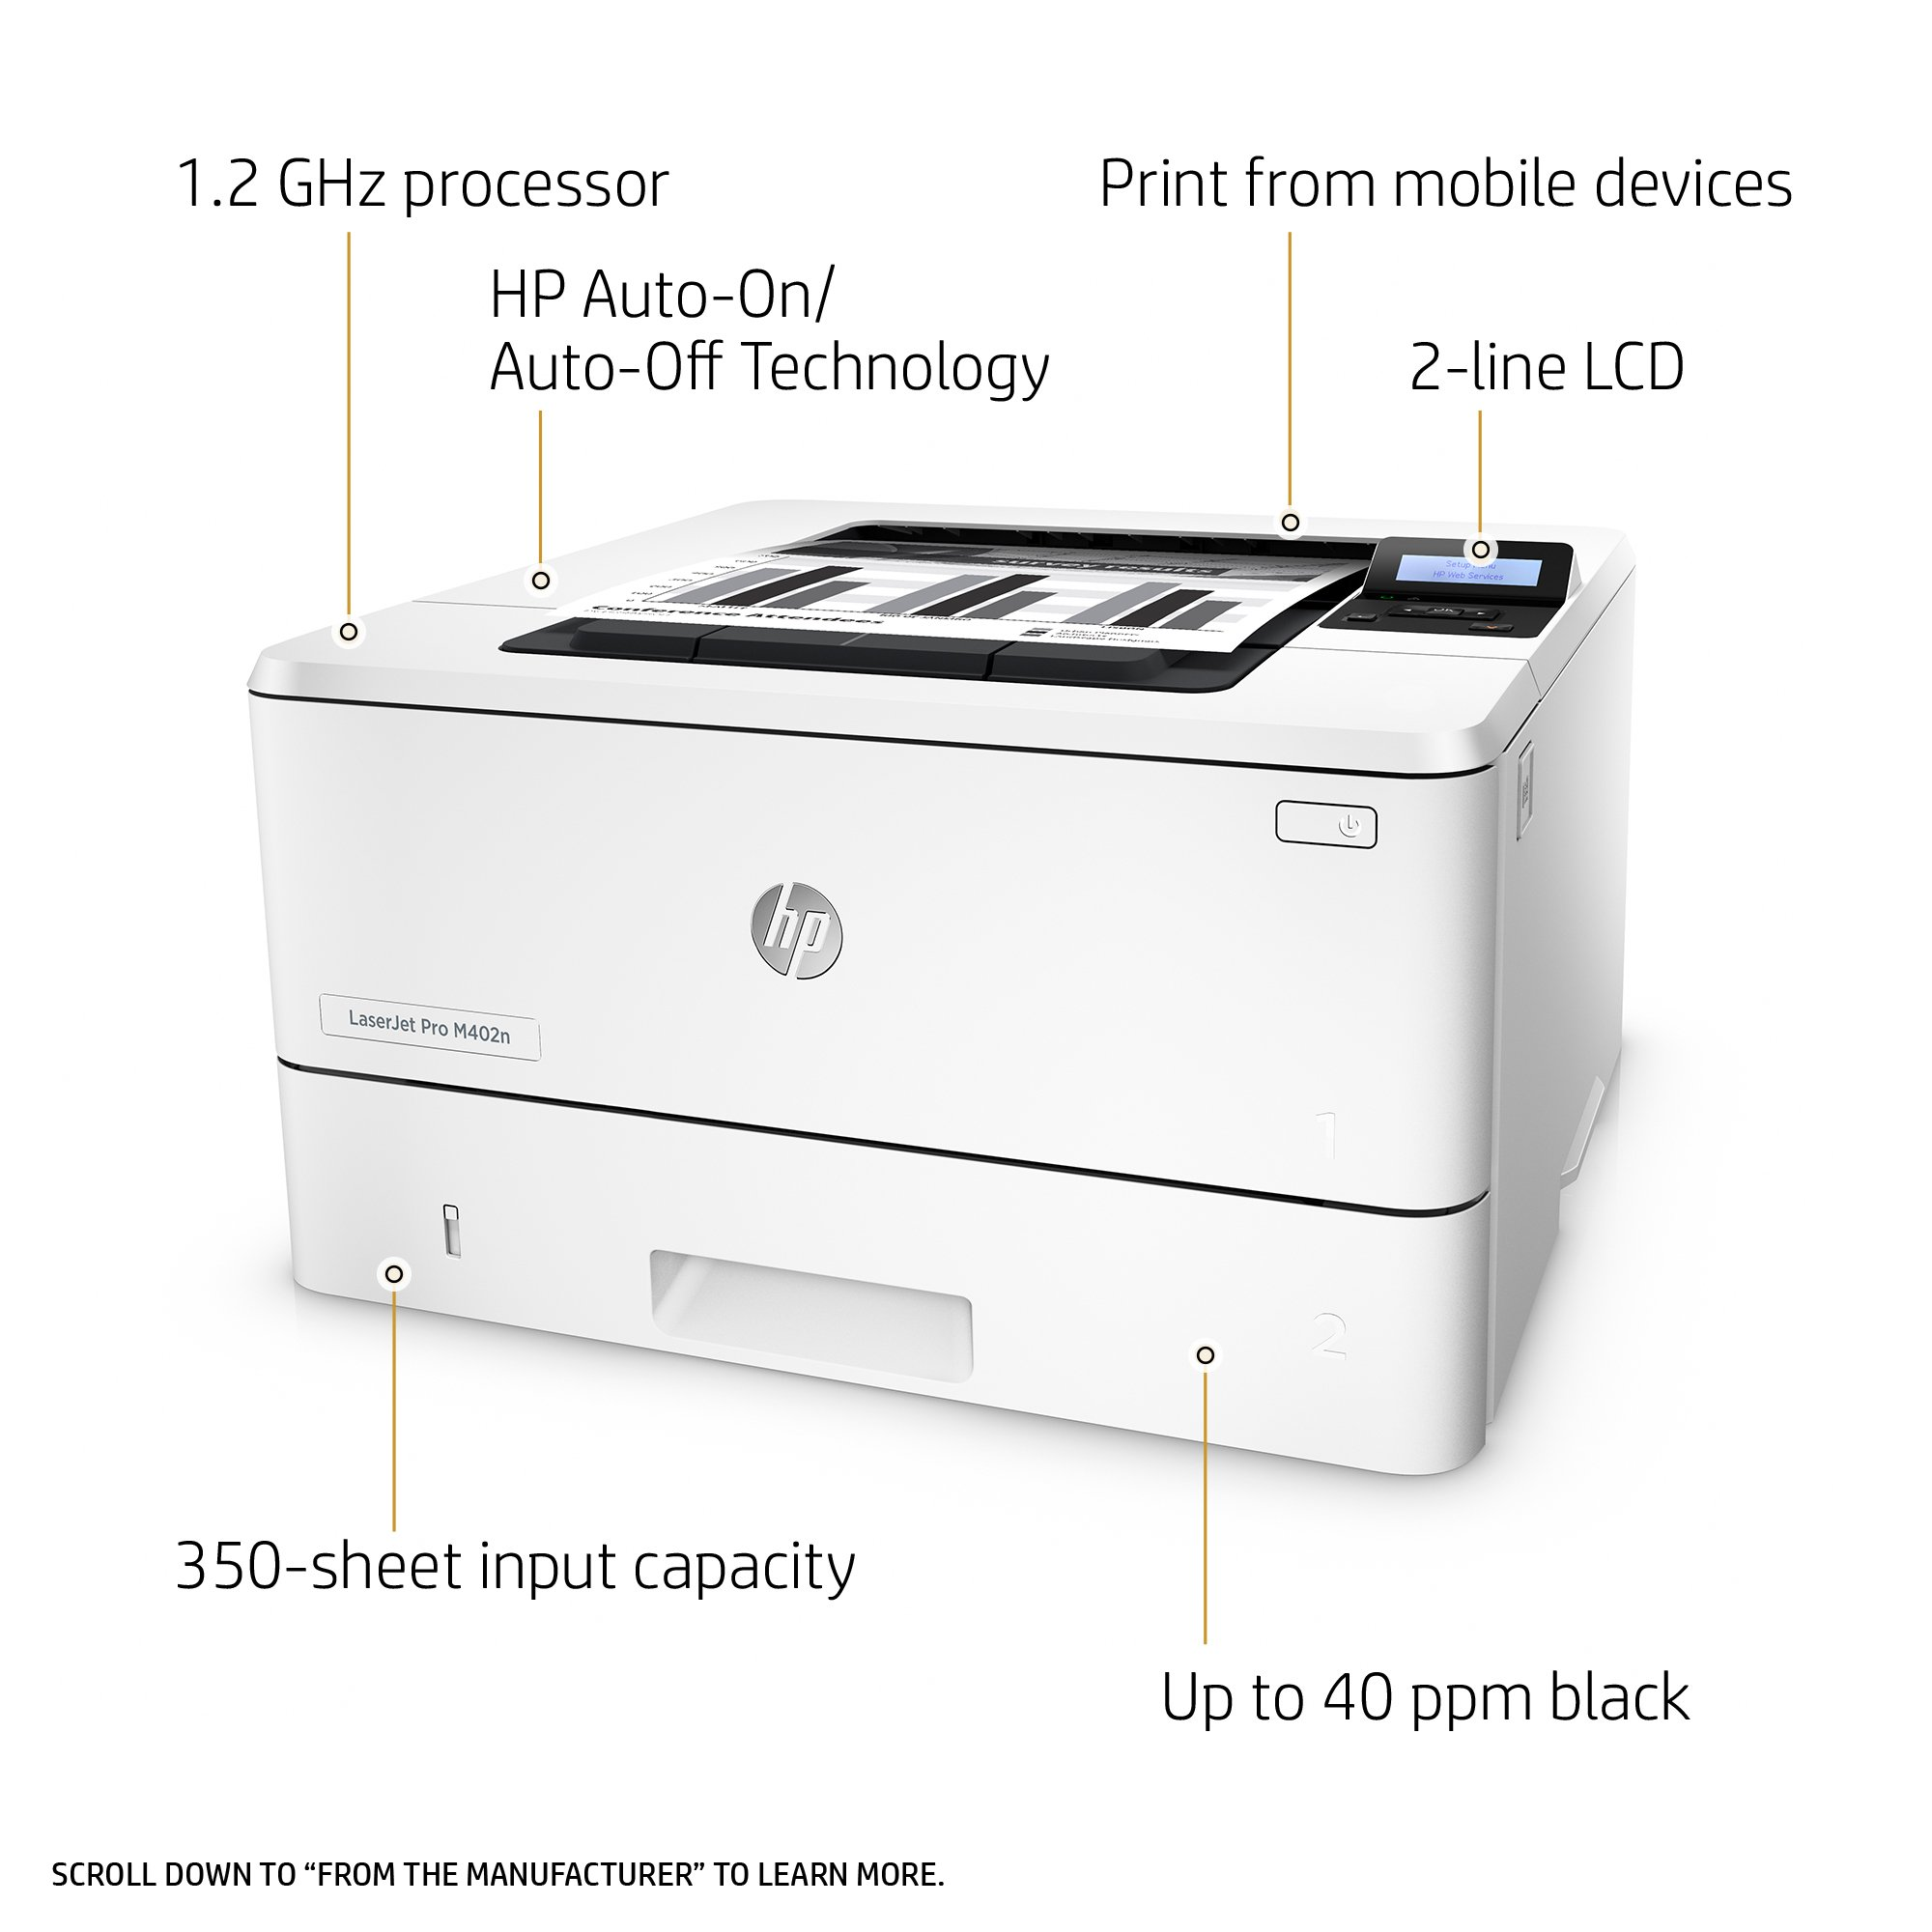 HP LaserJet Pro M402n Laser Printer with Built-in Ethernet, Amazon Dash Replenishment ready (C5F93A) by HP (Image #2)